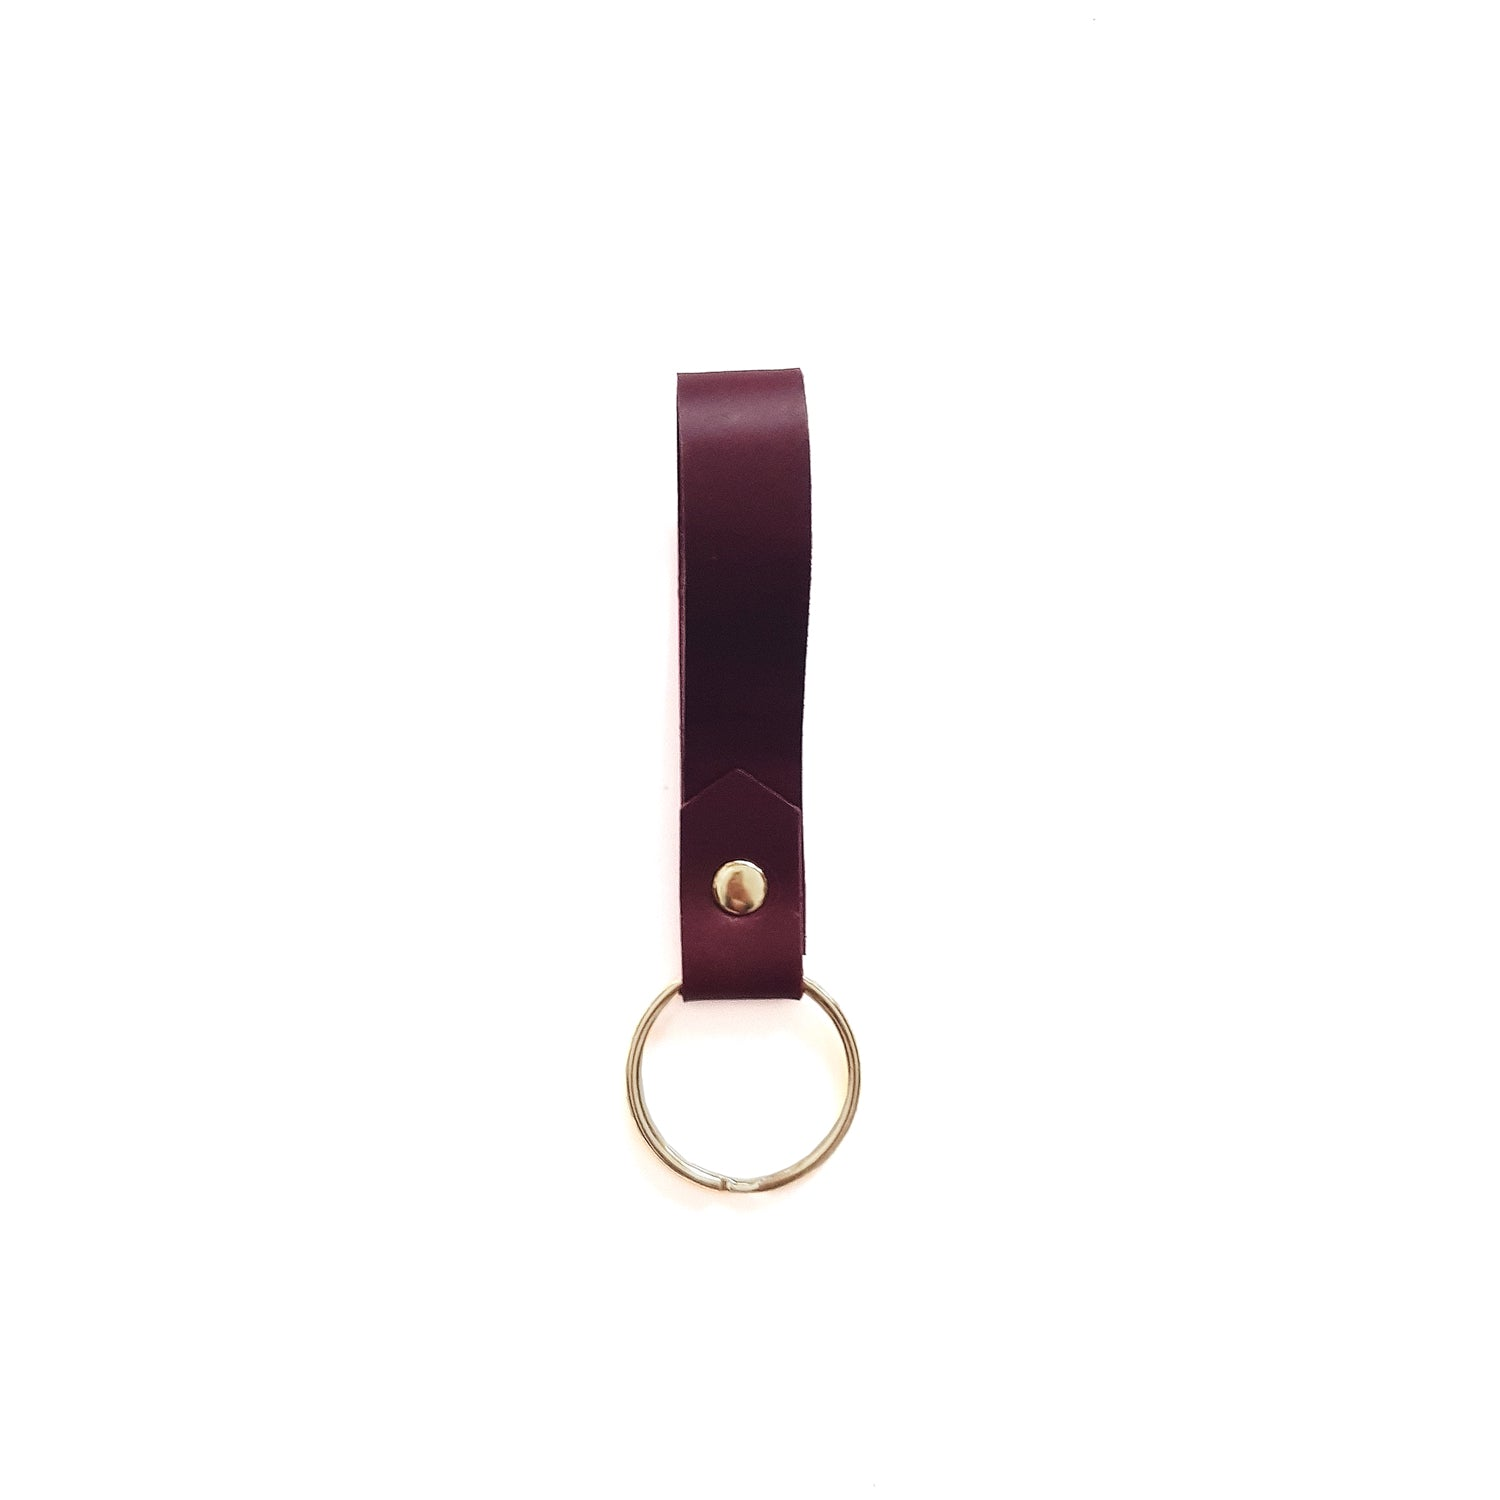 Keyring in Wine